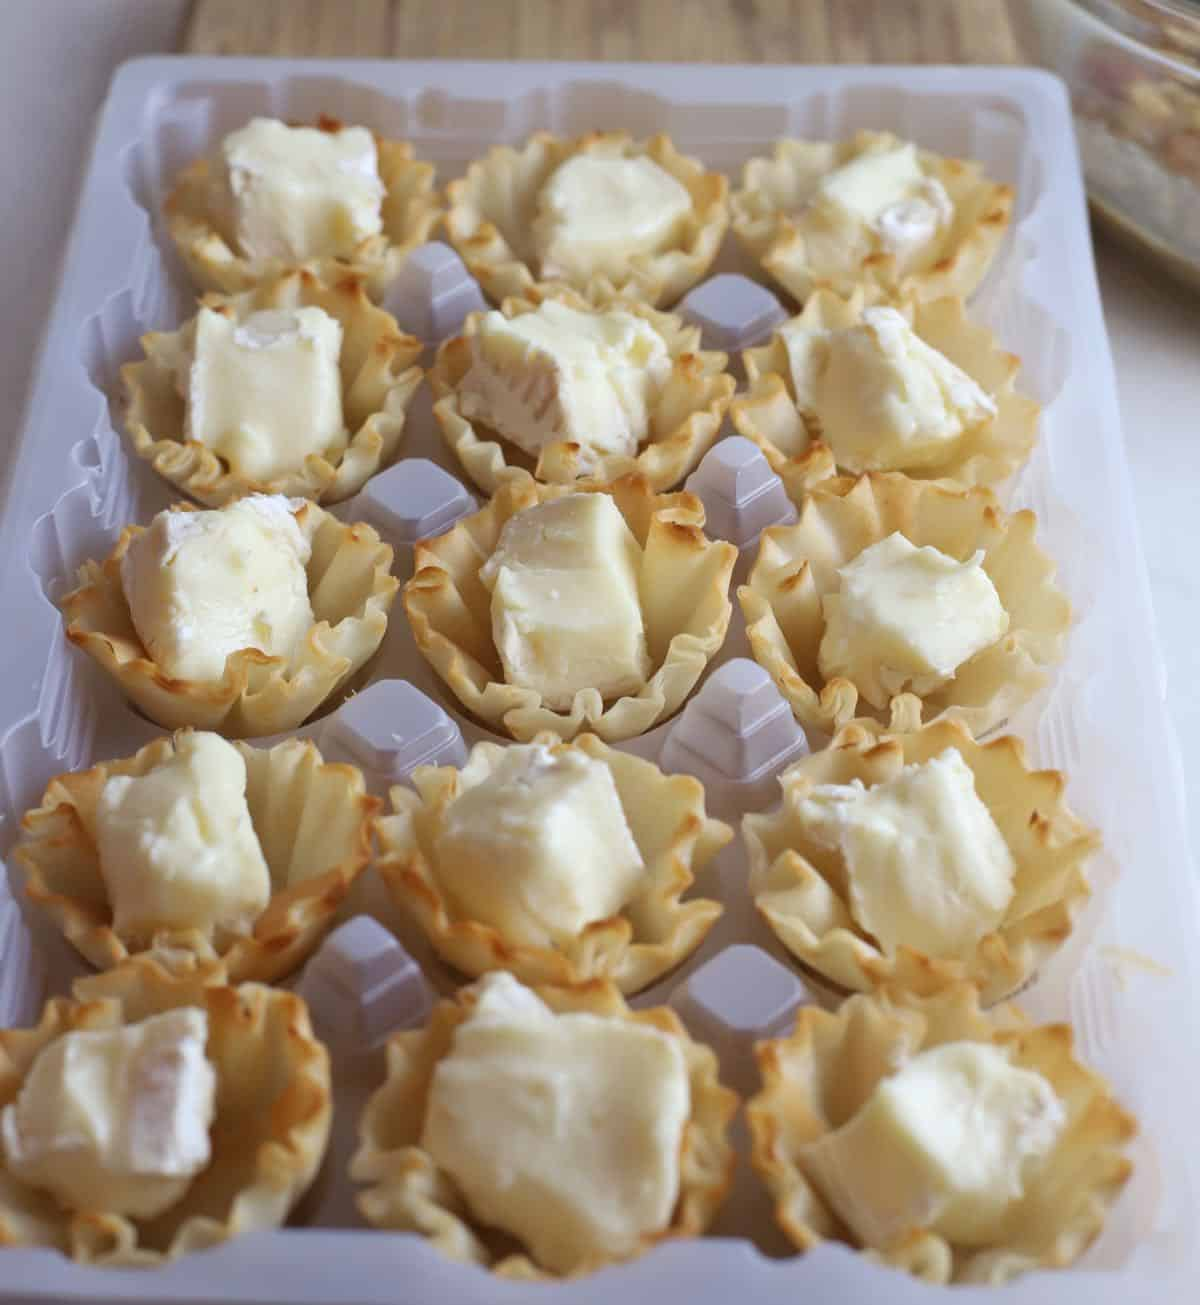 Cubes of brie cheese in phyllo shells on a baking sheet.